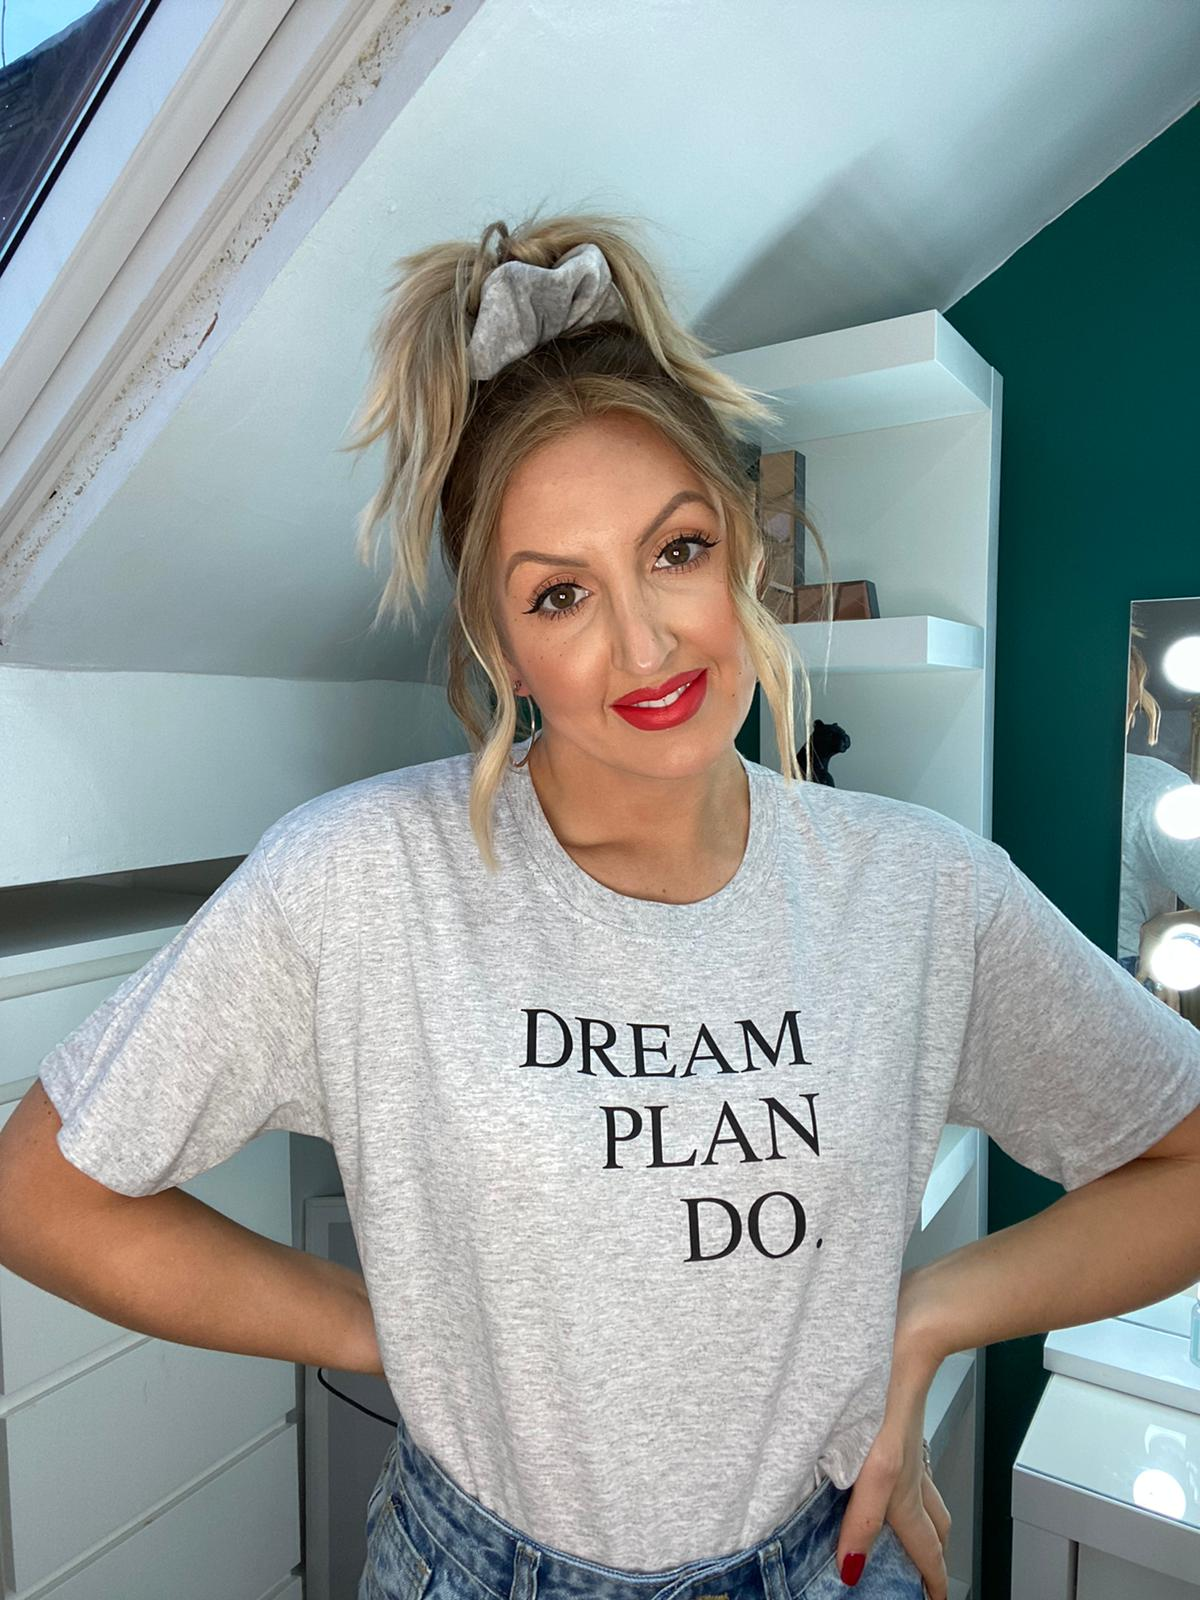 Dream Plan Do Grey Slogan Tshirt